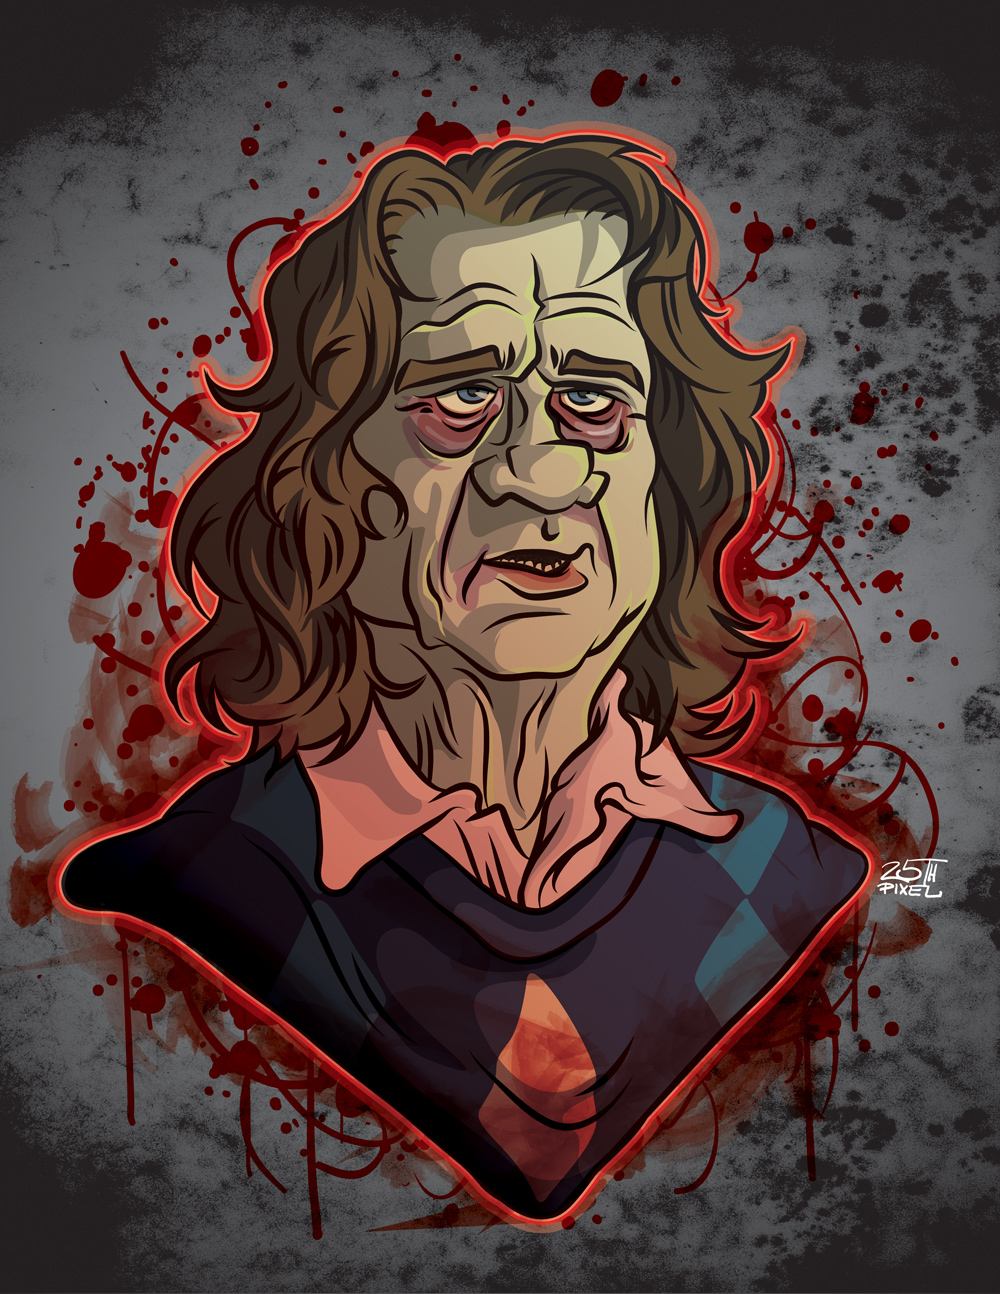 Zombie Bill Murray by 25thPixel